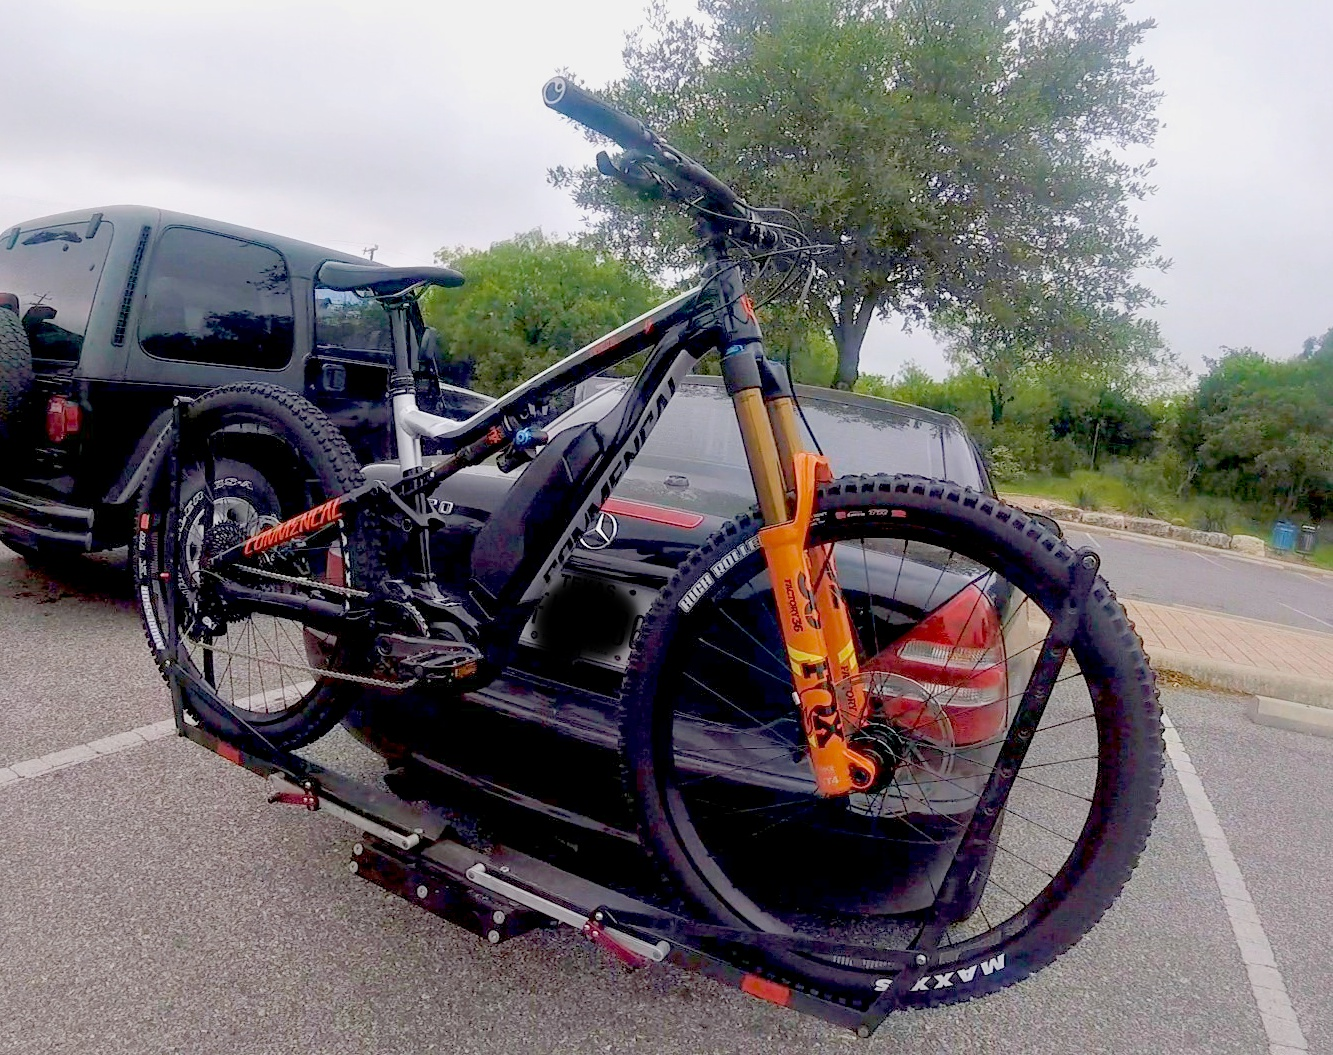 commencal-first-dirt-with-e-bike-dave-00-00-08-241-jpg.1039